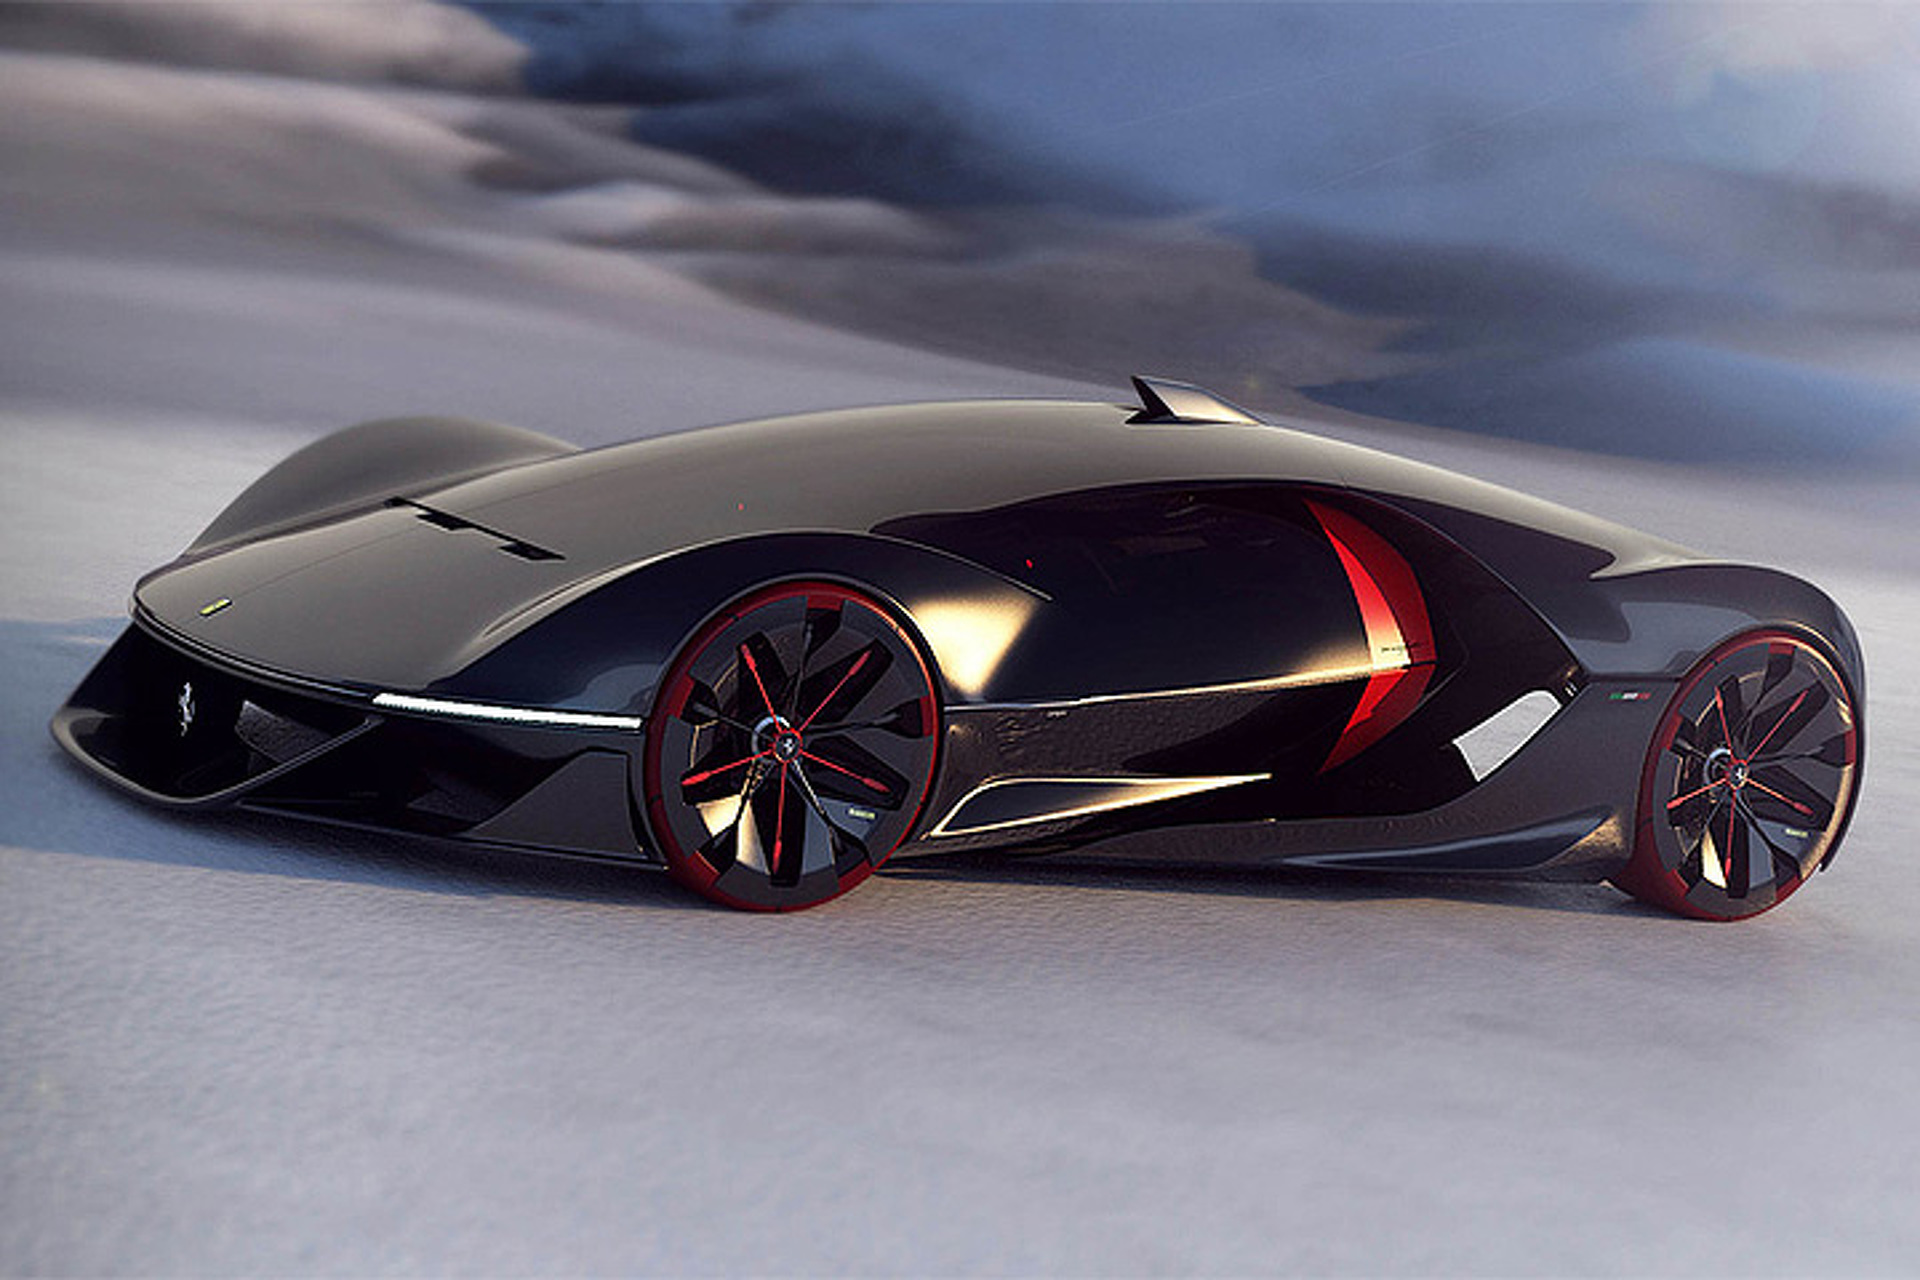 Meet the Winner of the Ferrari Top Design School Challenge